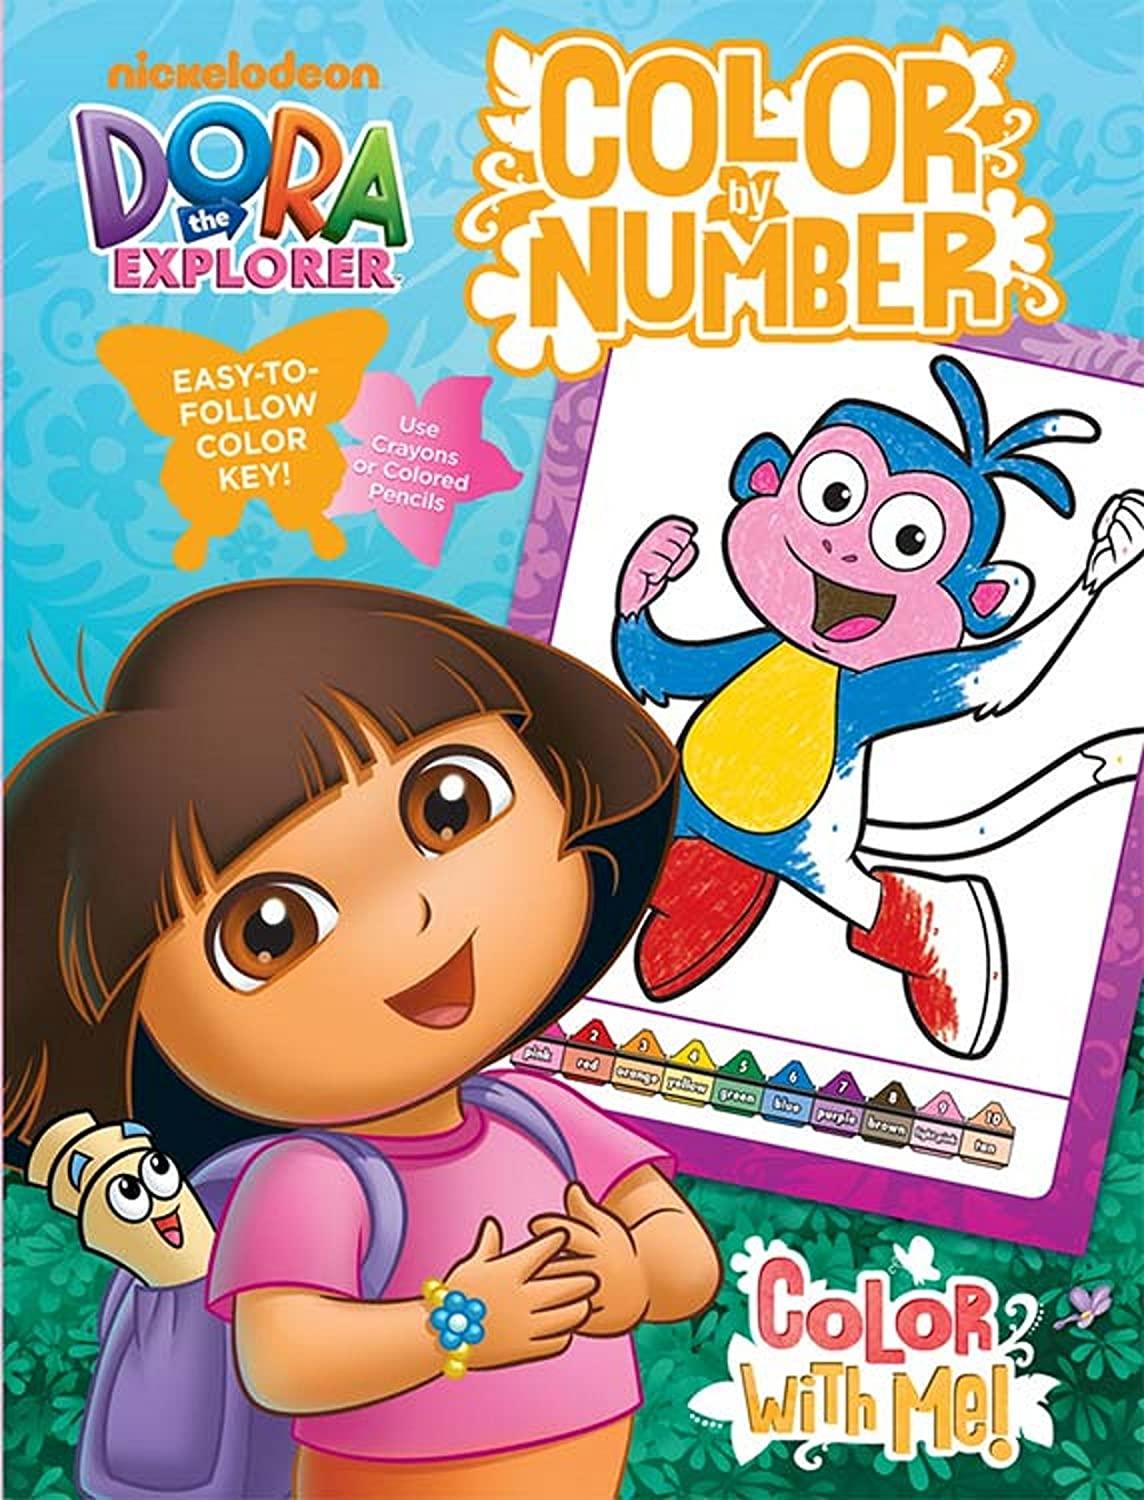 Bendon Dora The Explorer Color With Me 48 Page Color By Number Coloring Book With Full Color Border Guide